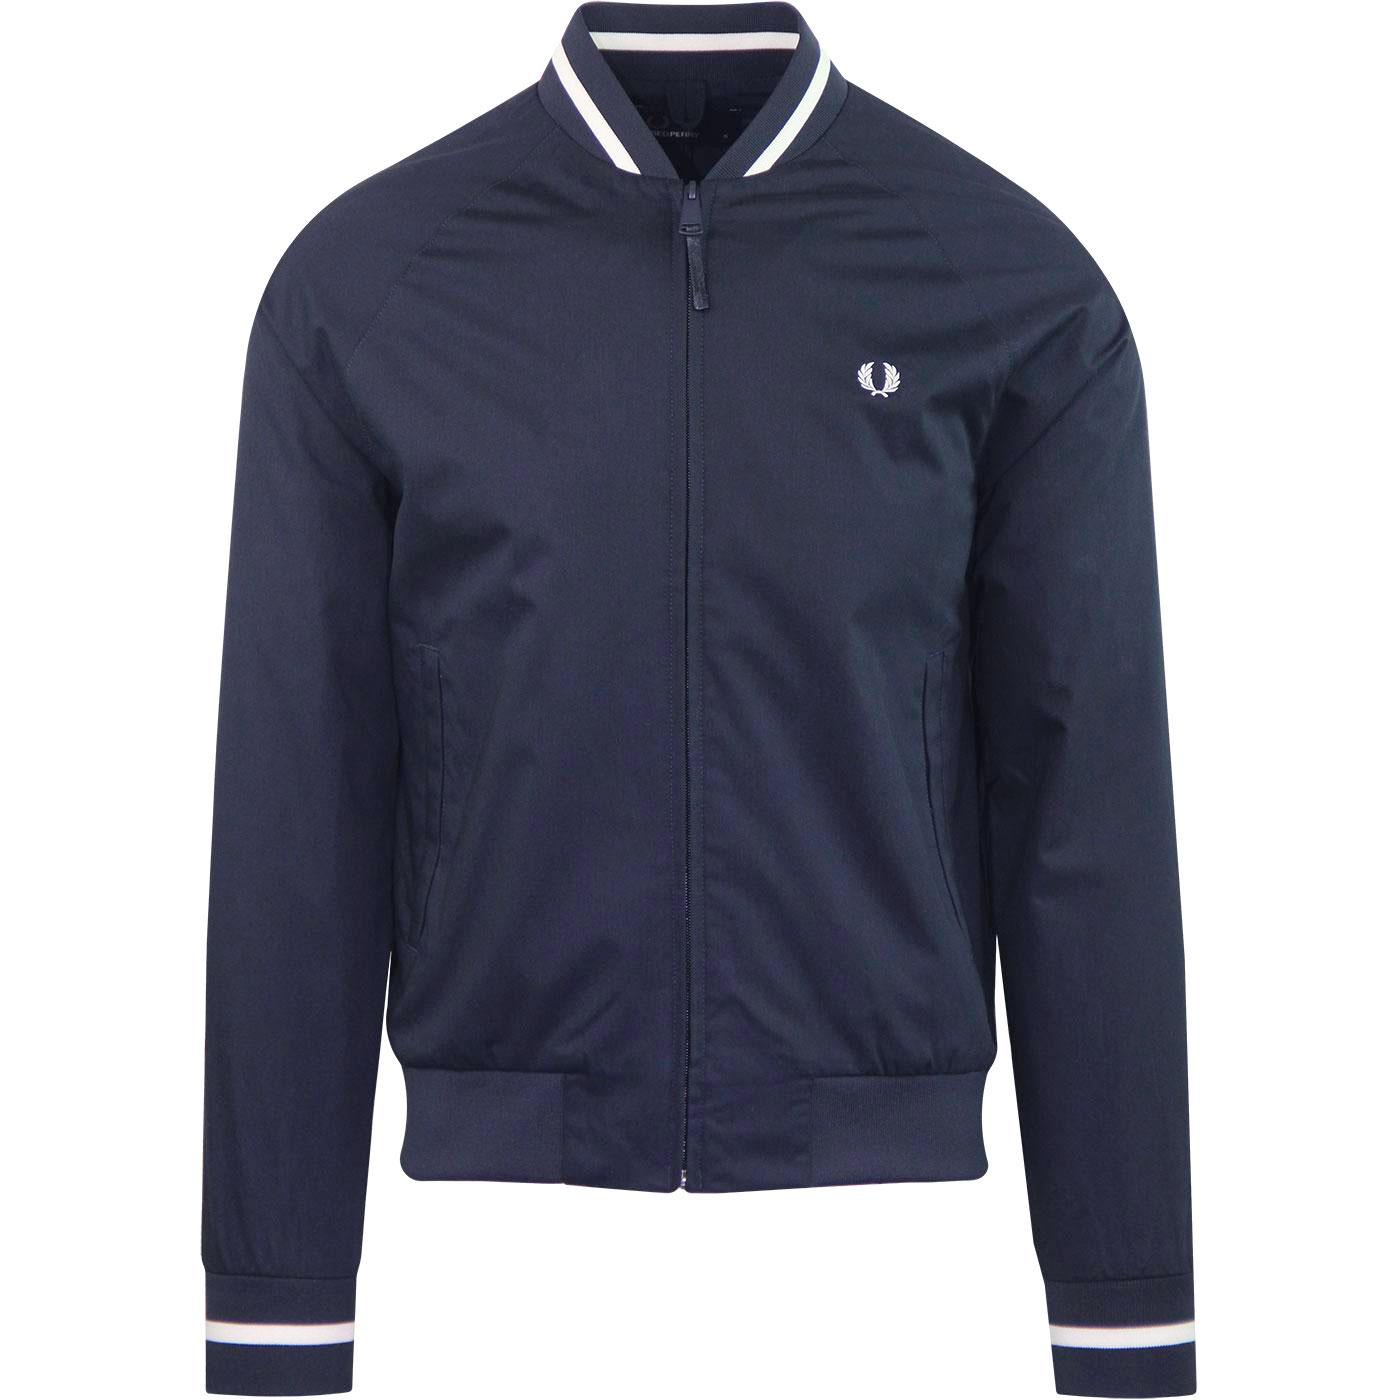 FRED PERRY Retro Mod Tennis Bomber Jacket (NAVY)